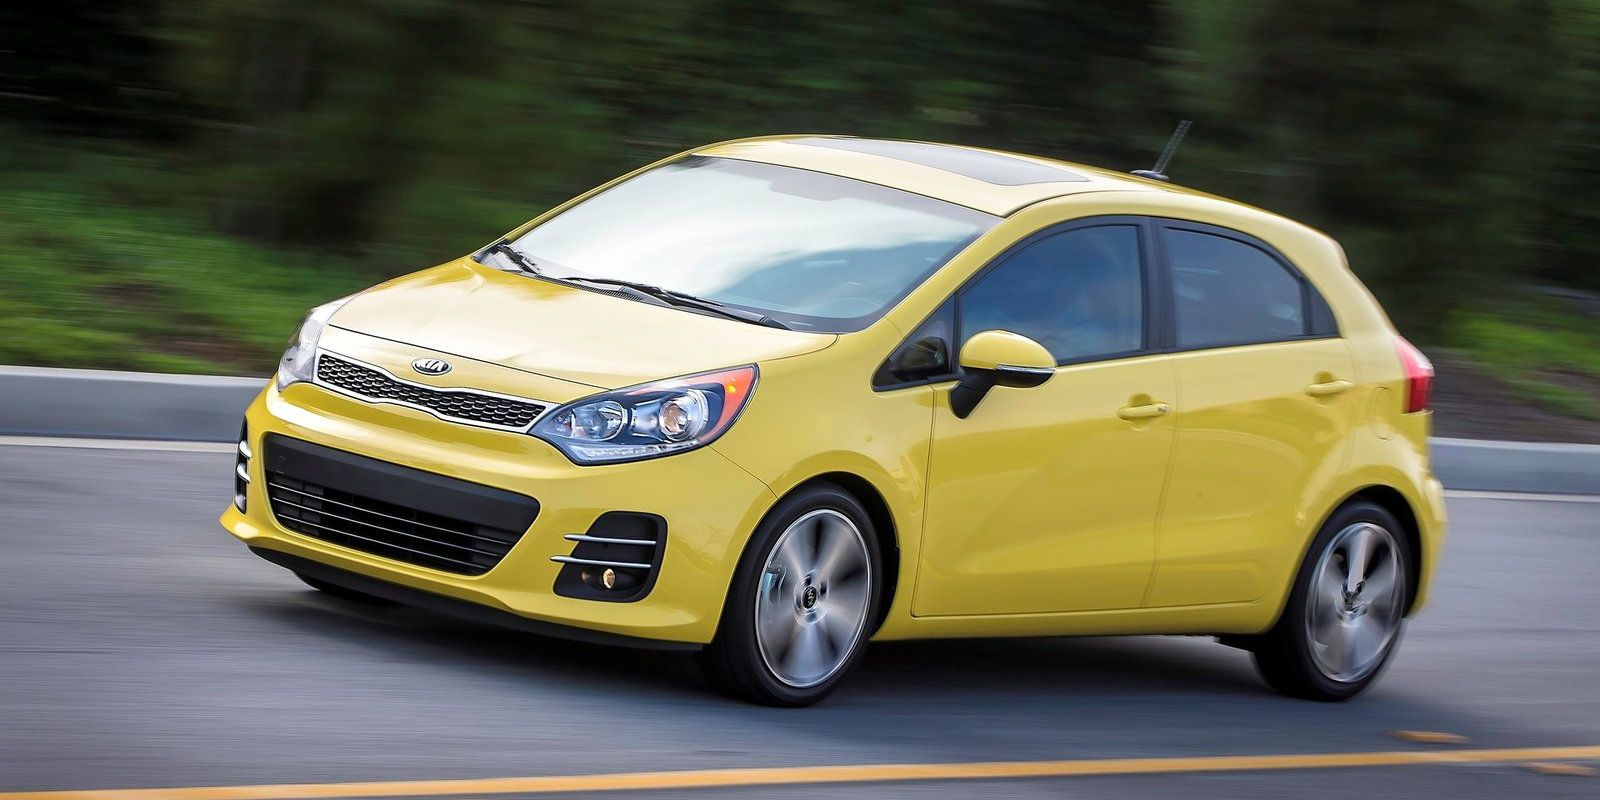 <p>What used to be the byword in awful cheap transportation has turned into a great looking hatchback that's fun to drive. Get it with the manual gearbox.</p>